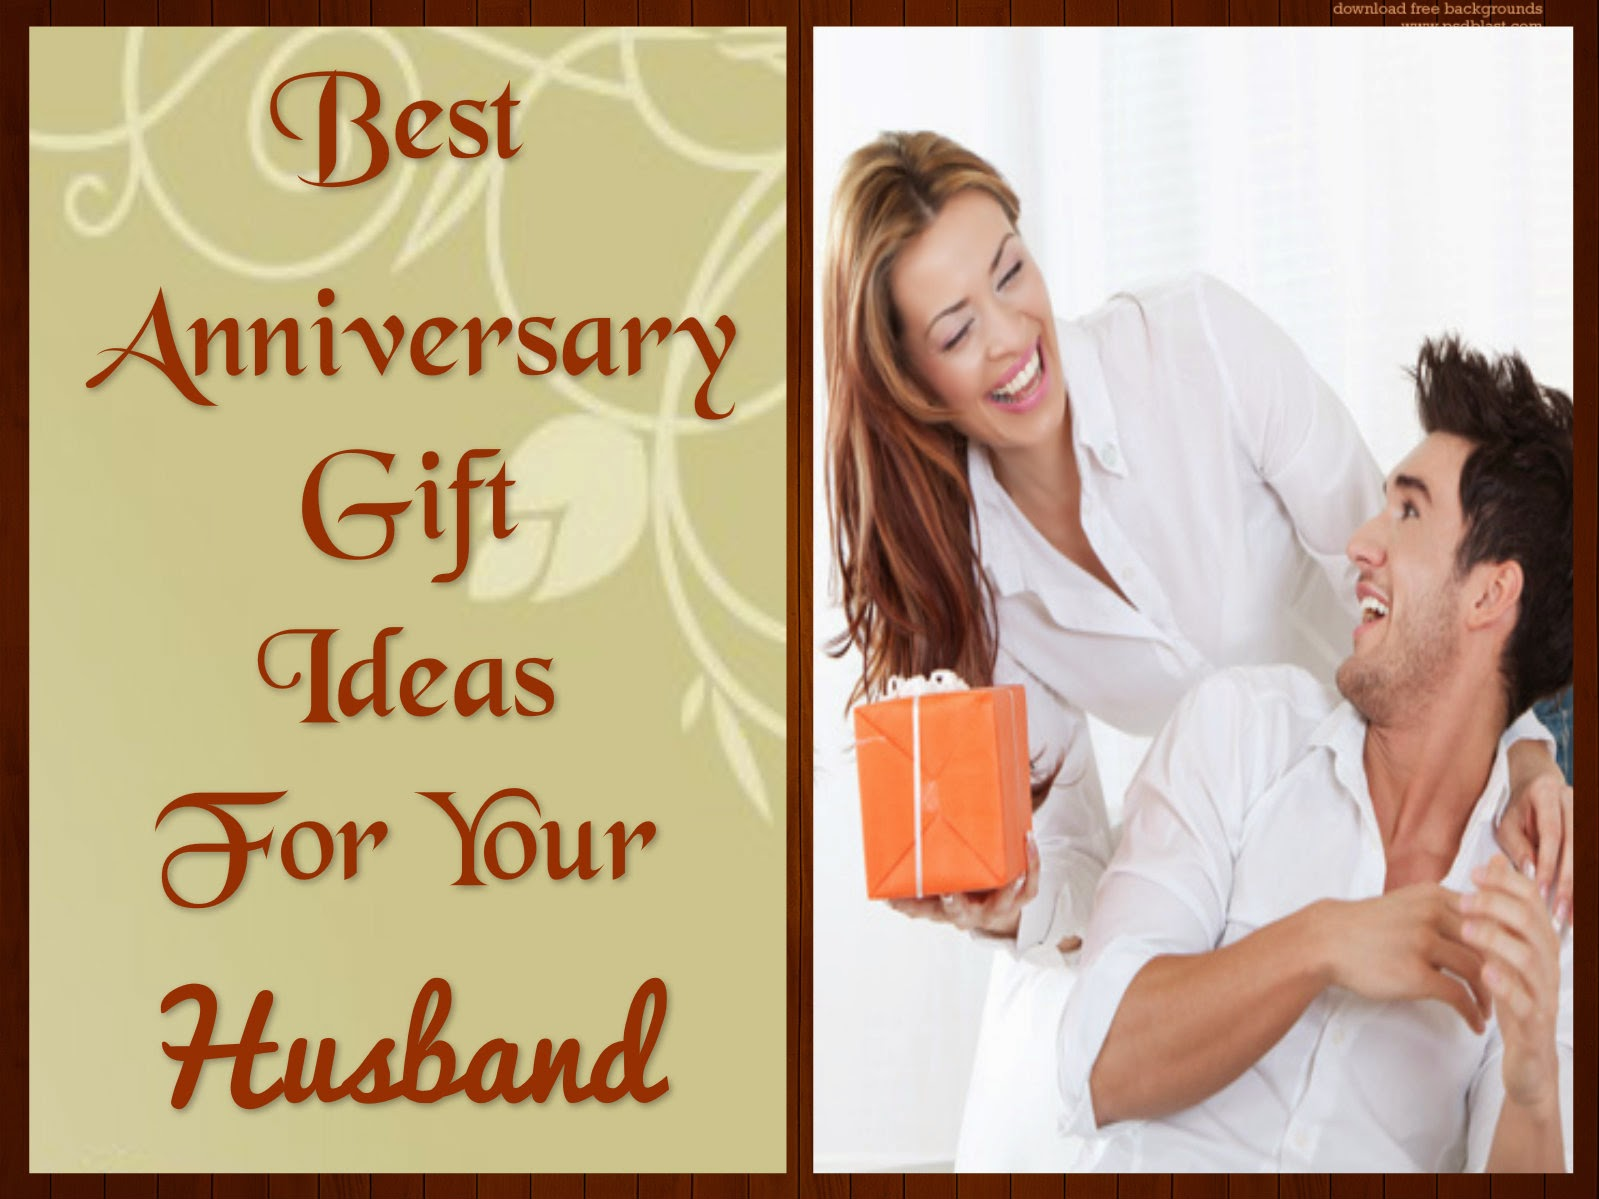 Wedding Gift Ideas For Your Husband : Wedding Anniversary Gifts: Best Anniversary Gift Ideas For Your ...